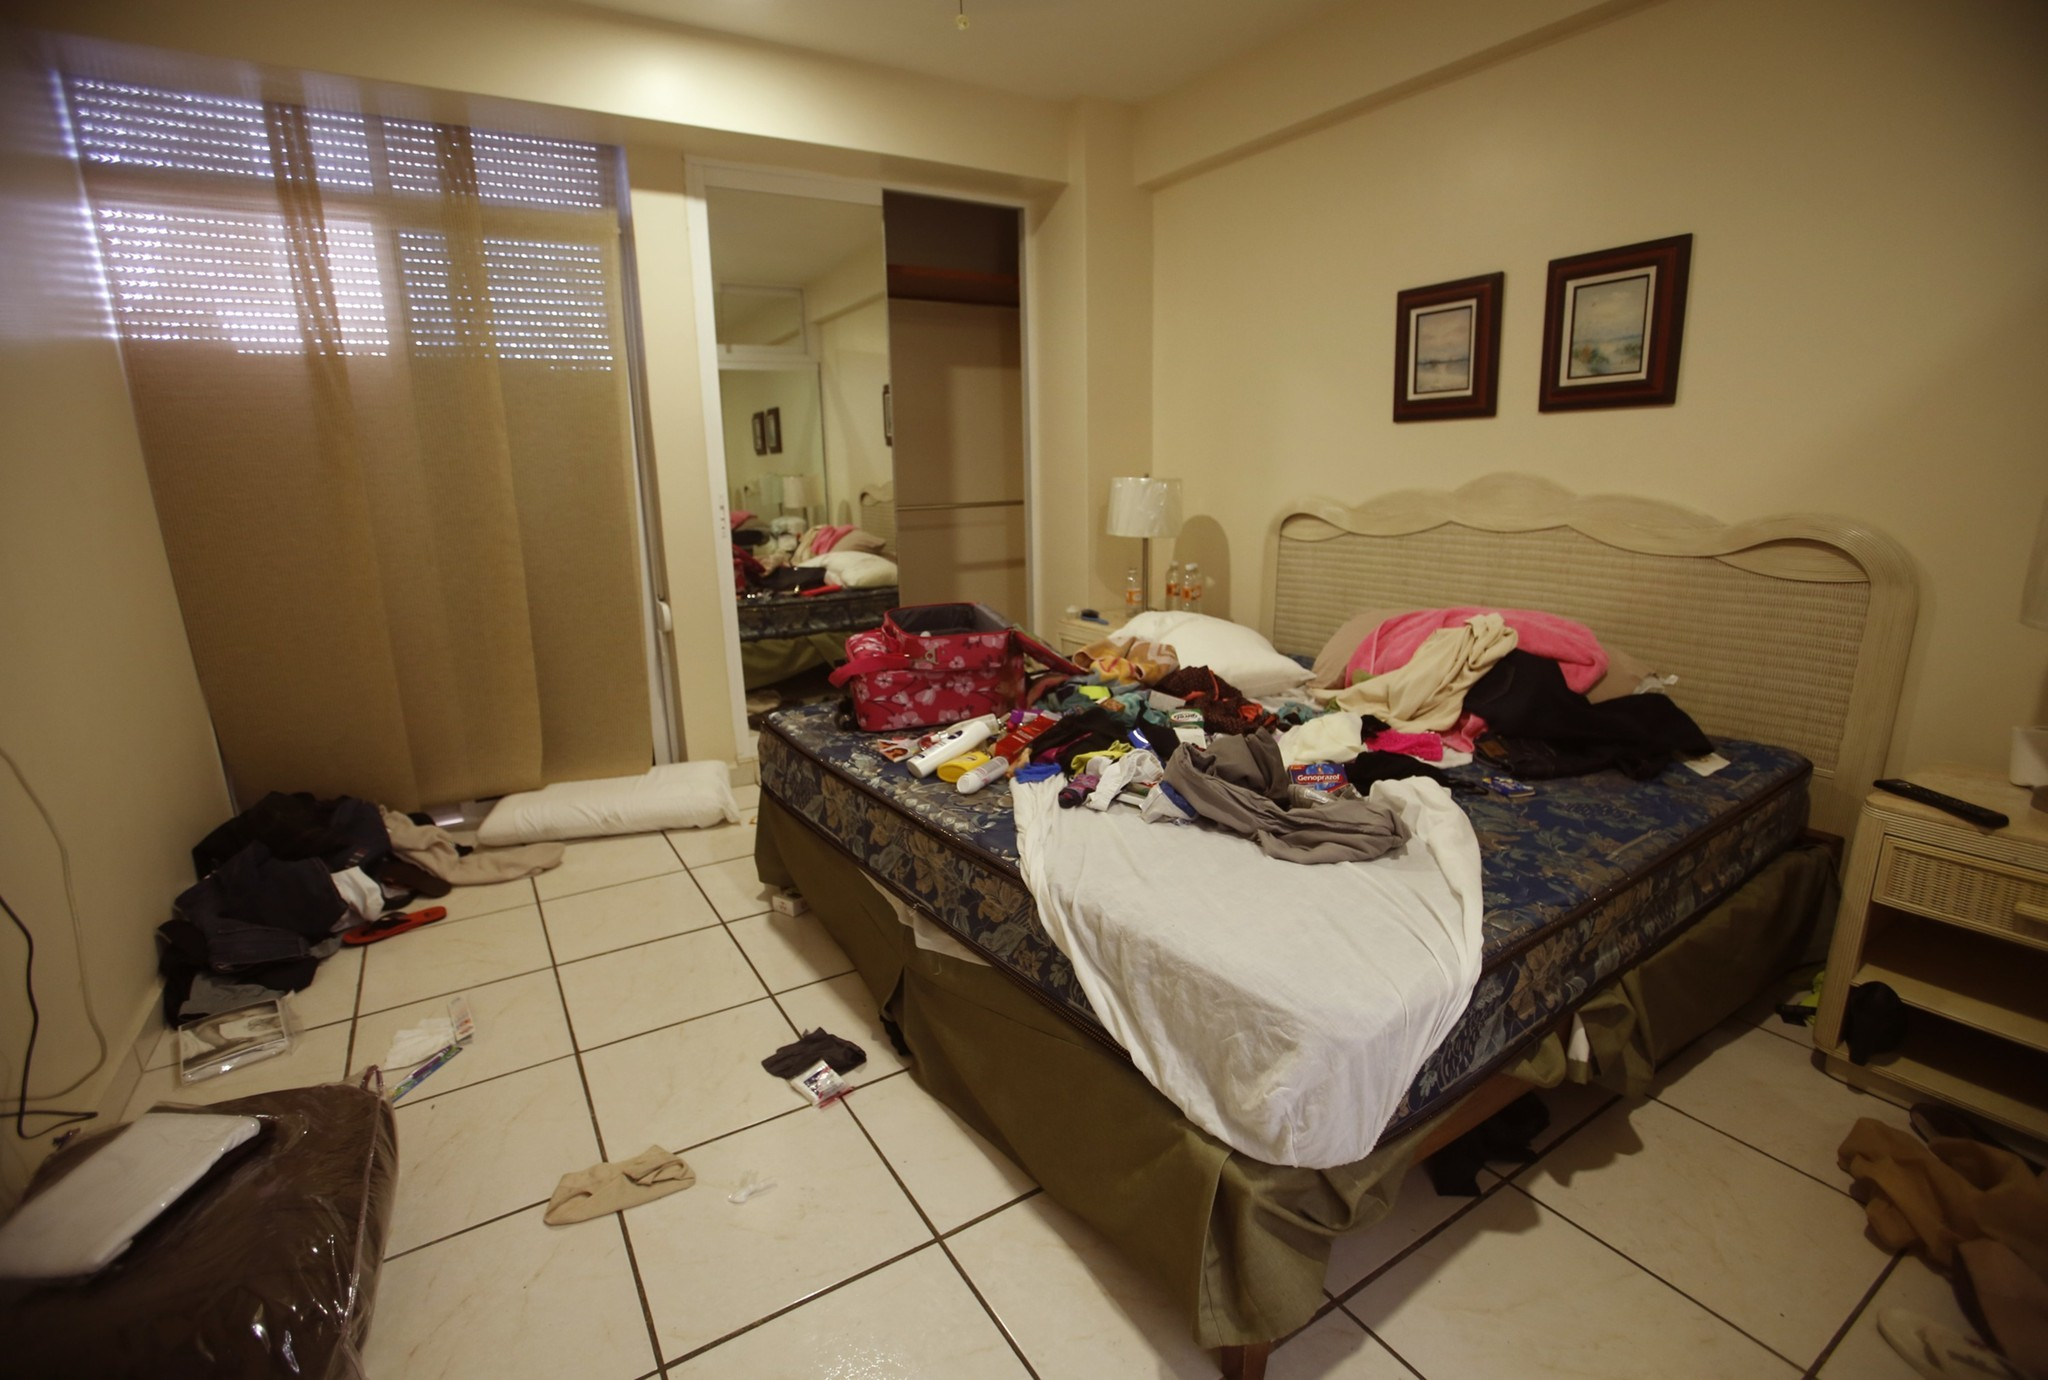 "Inside the condo where Joaquin ""El Chapo\"" Guzman was captured - Bedroom"